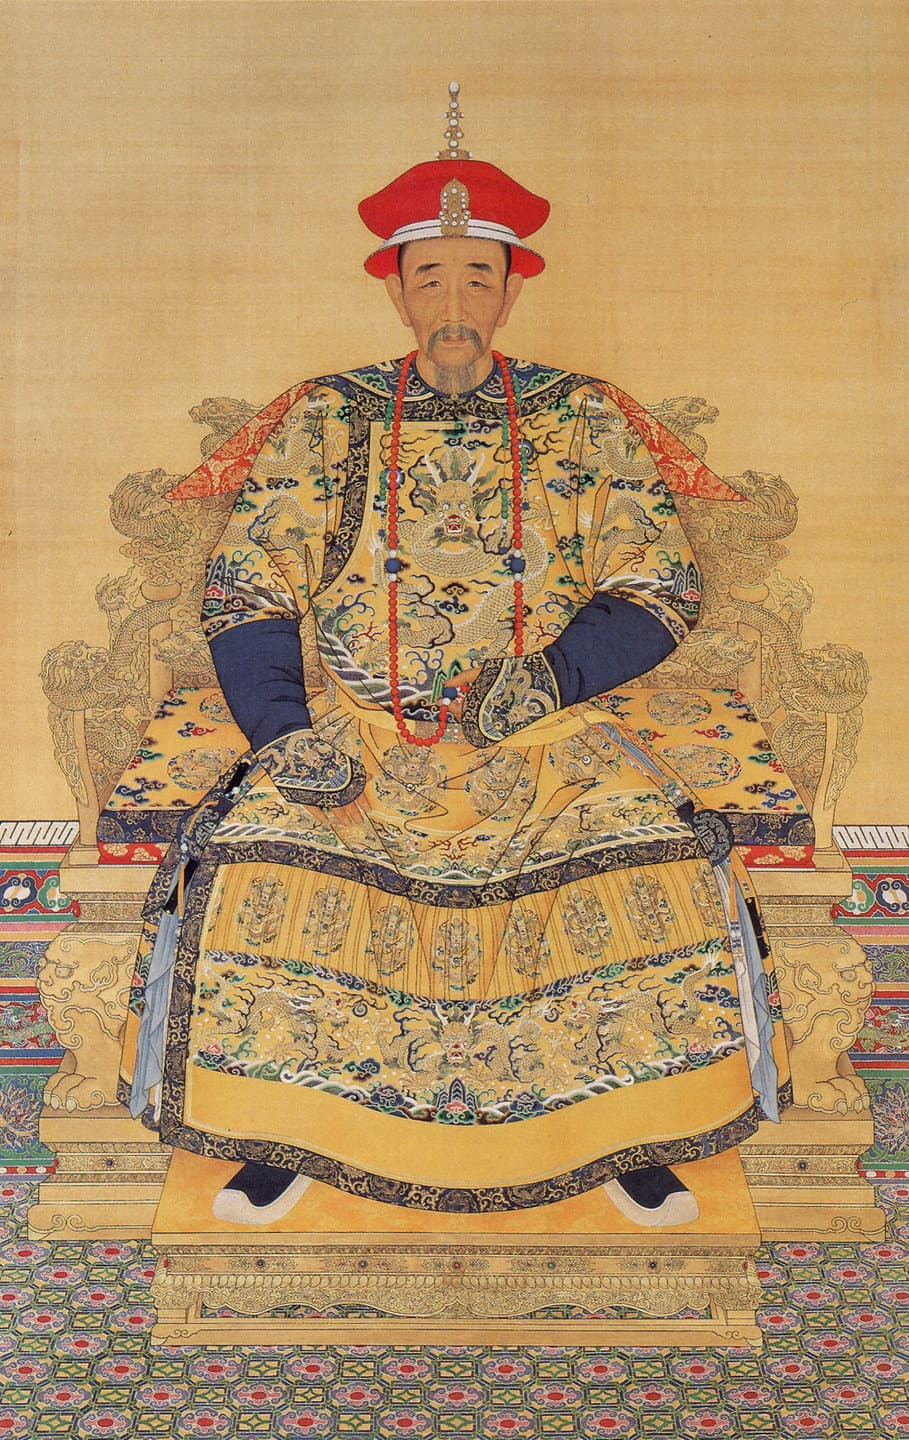 Portrait_of_the_Kangxi_Emperor_in_Court_Dress.jpg